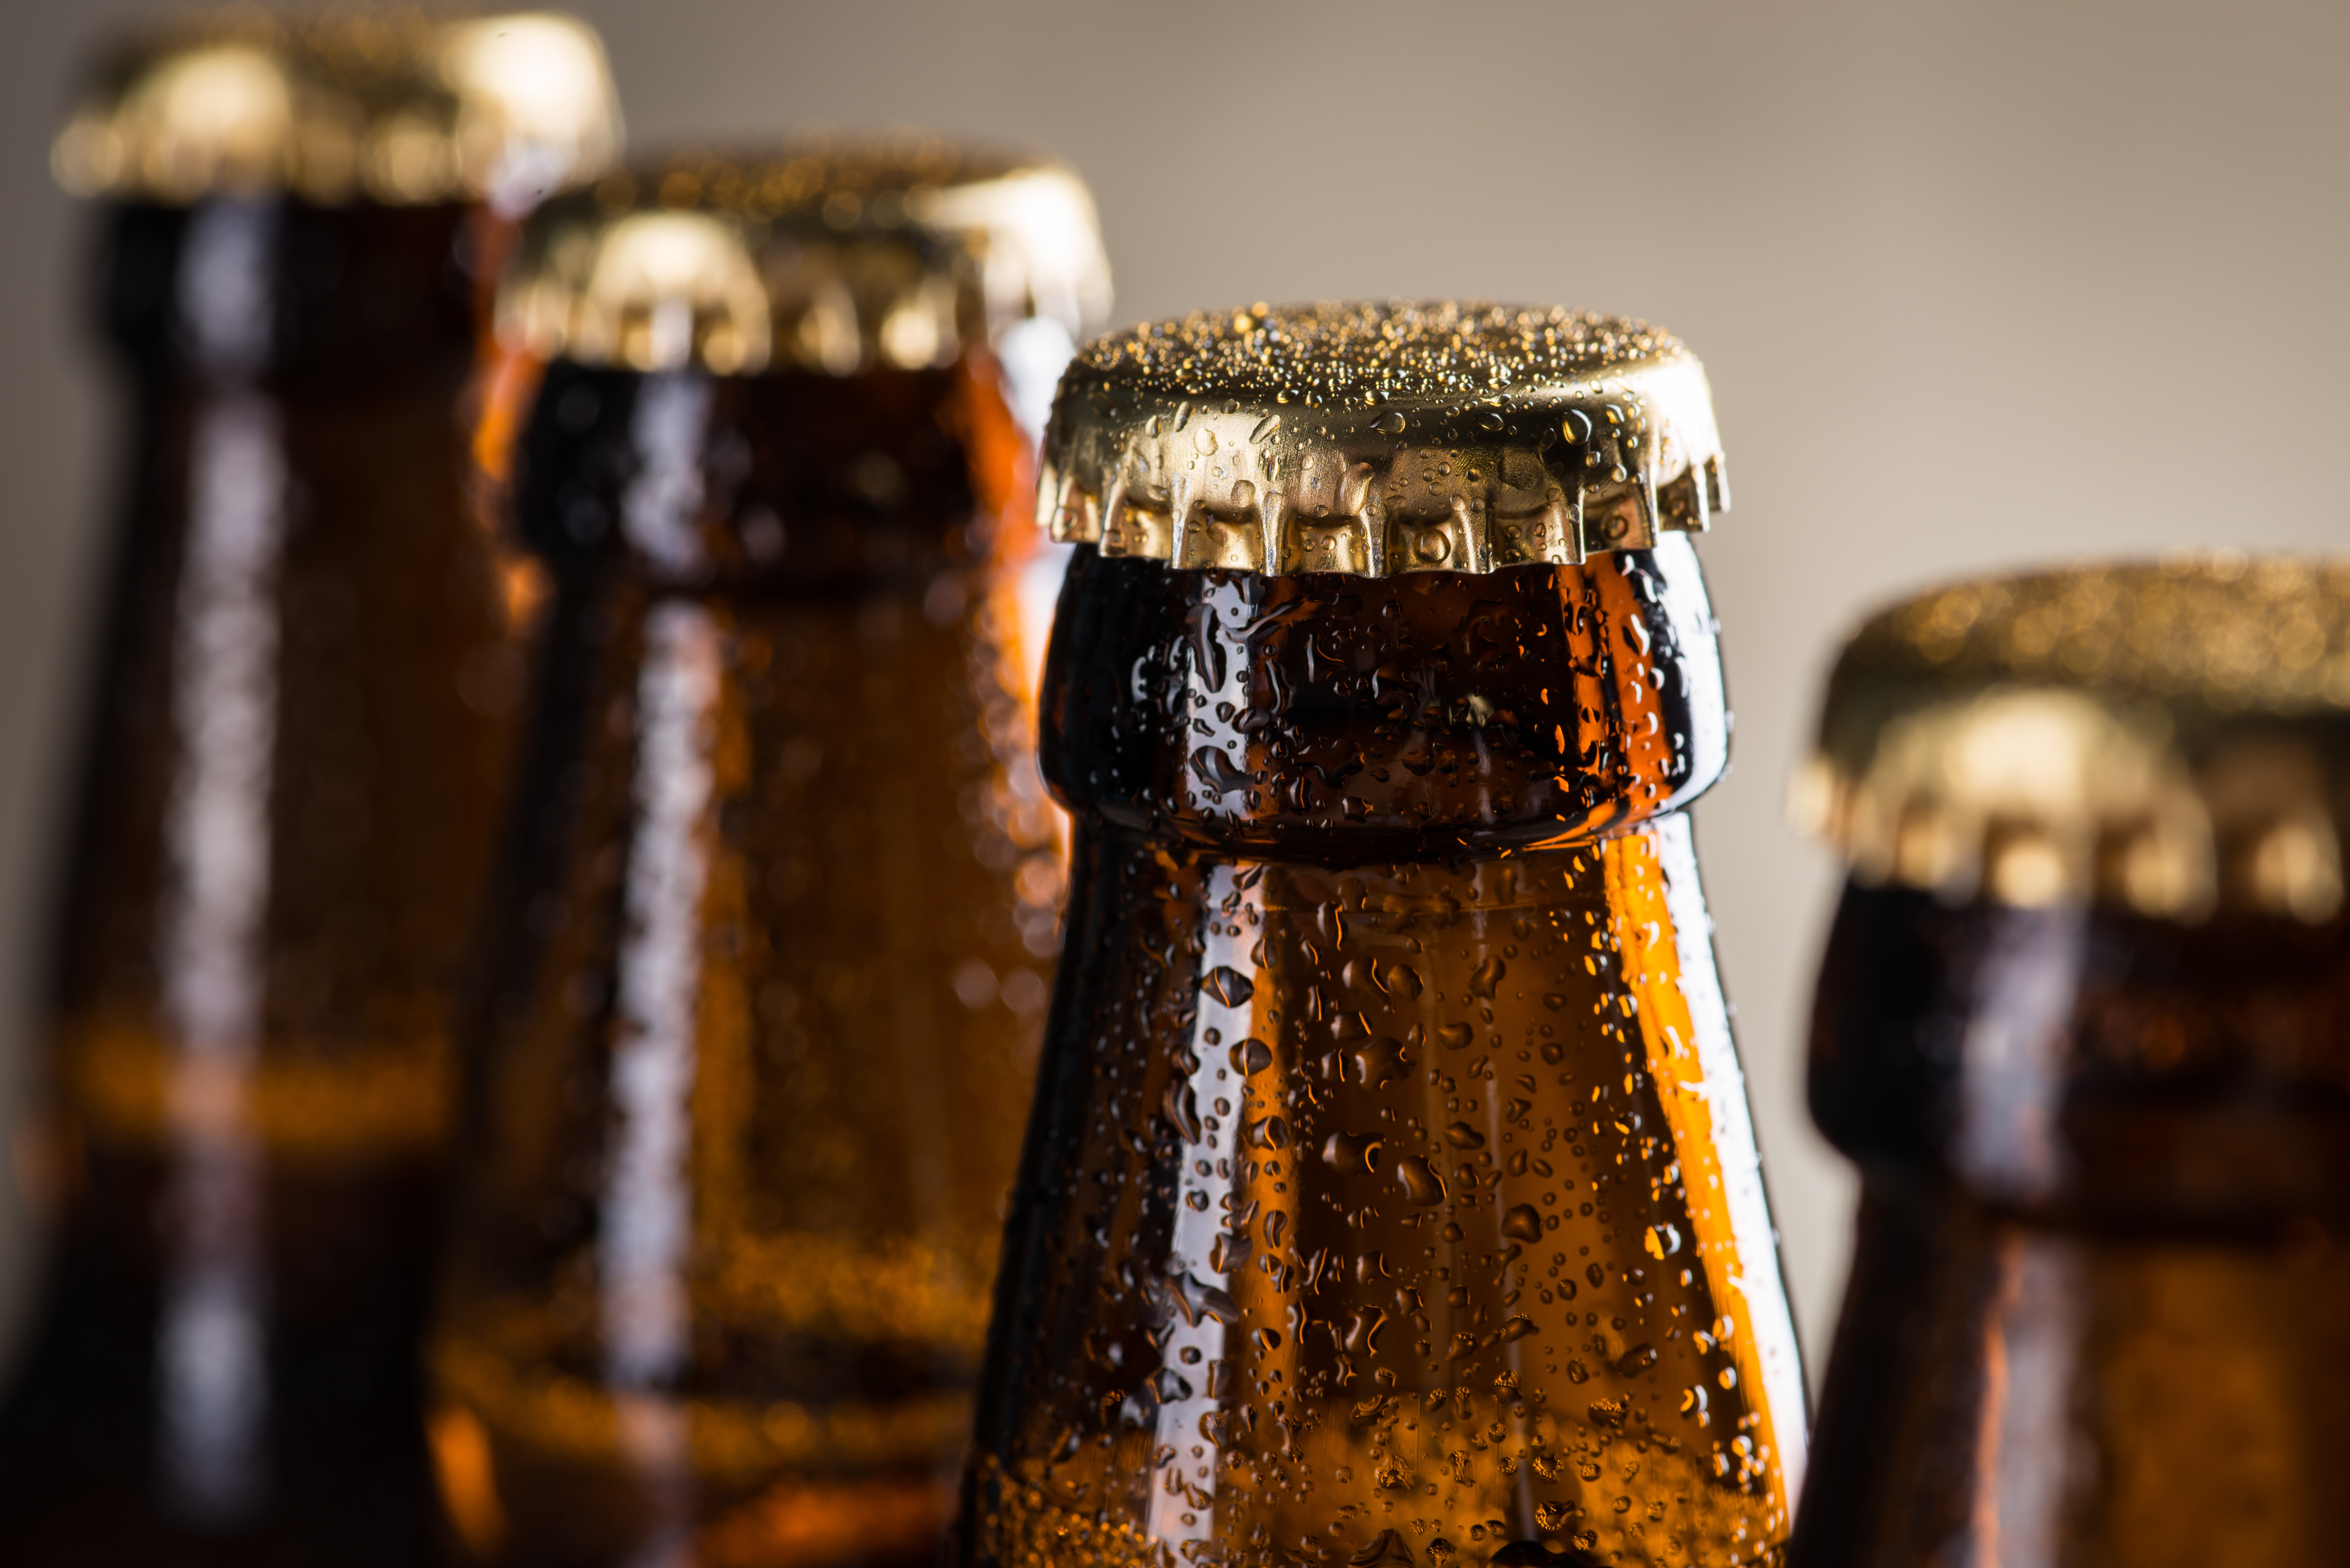 Ice cold beer bottles in a row over the grey concrete wall background